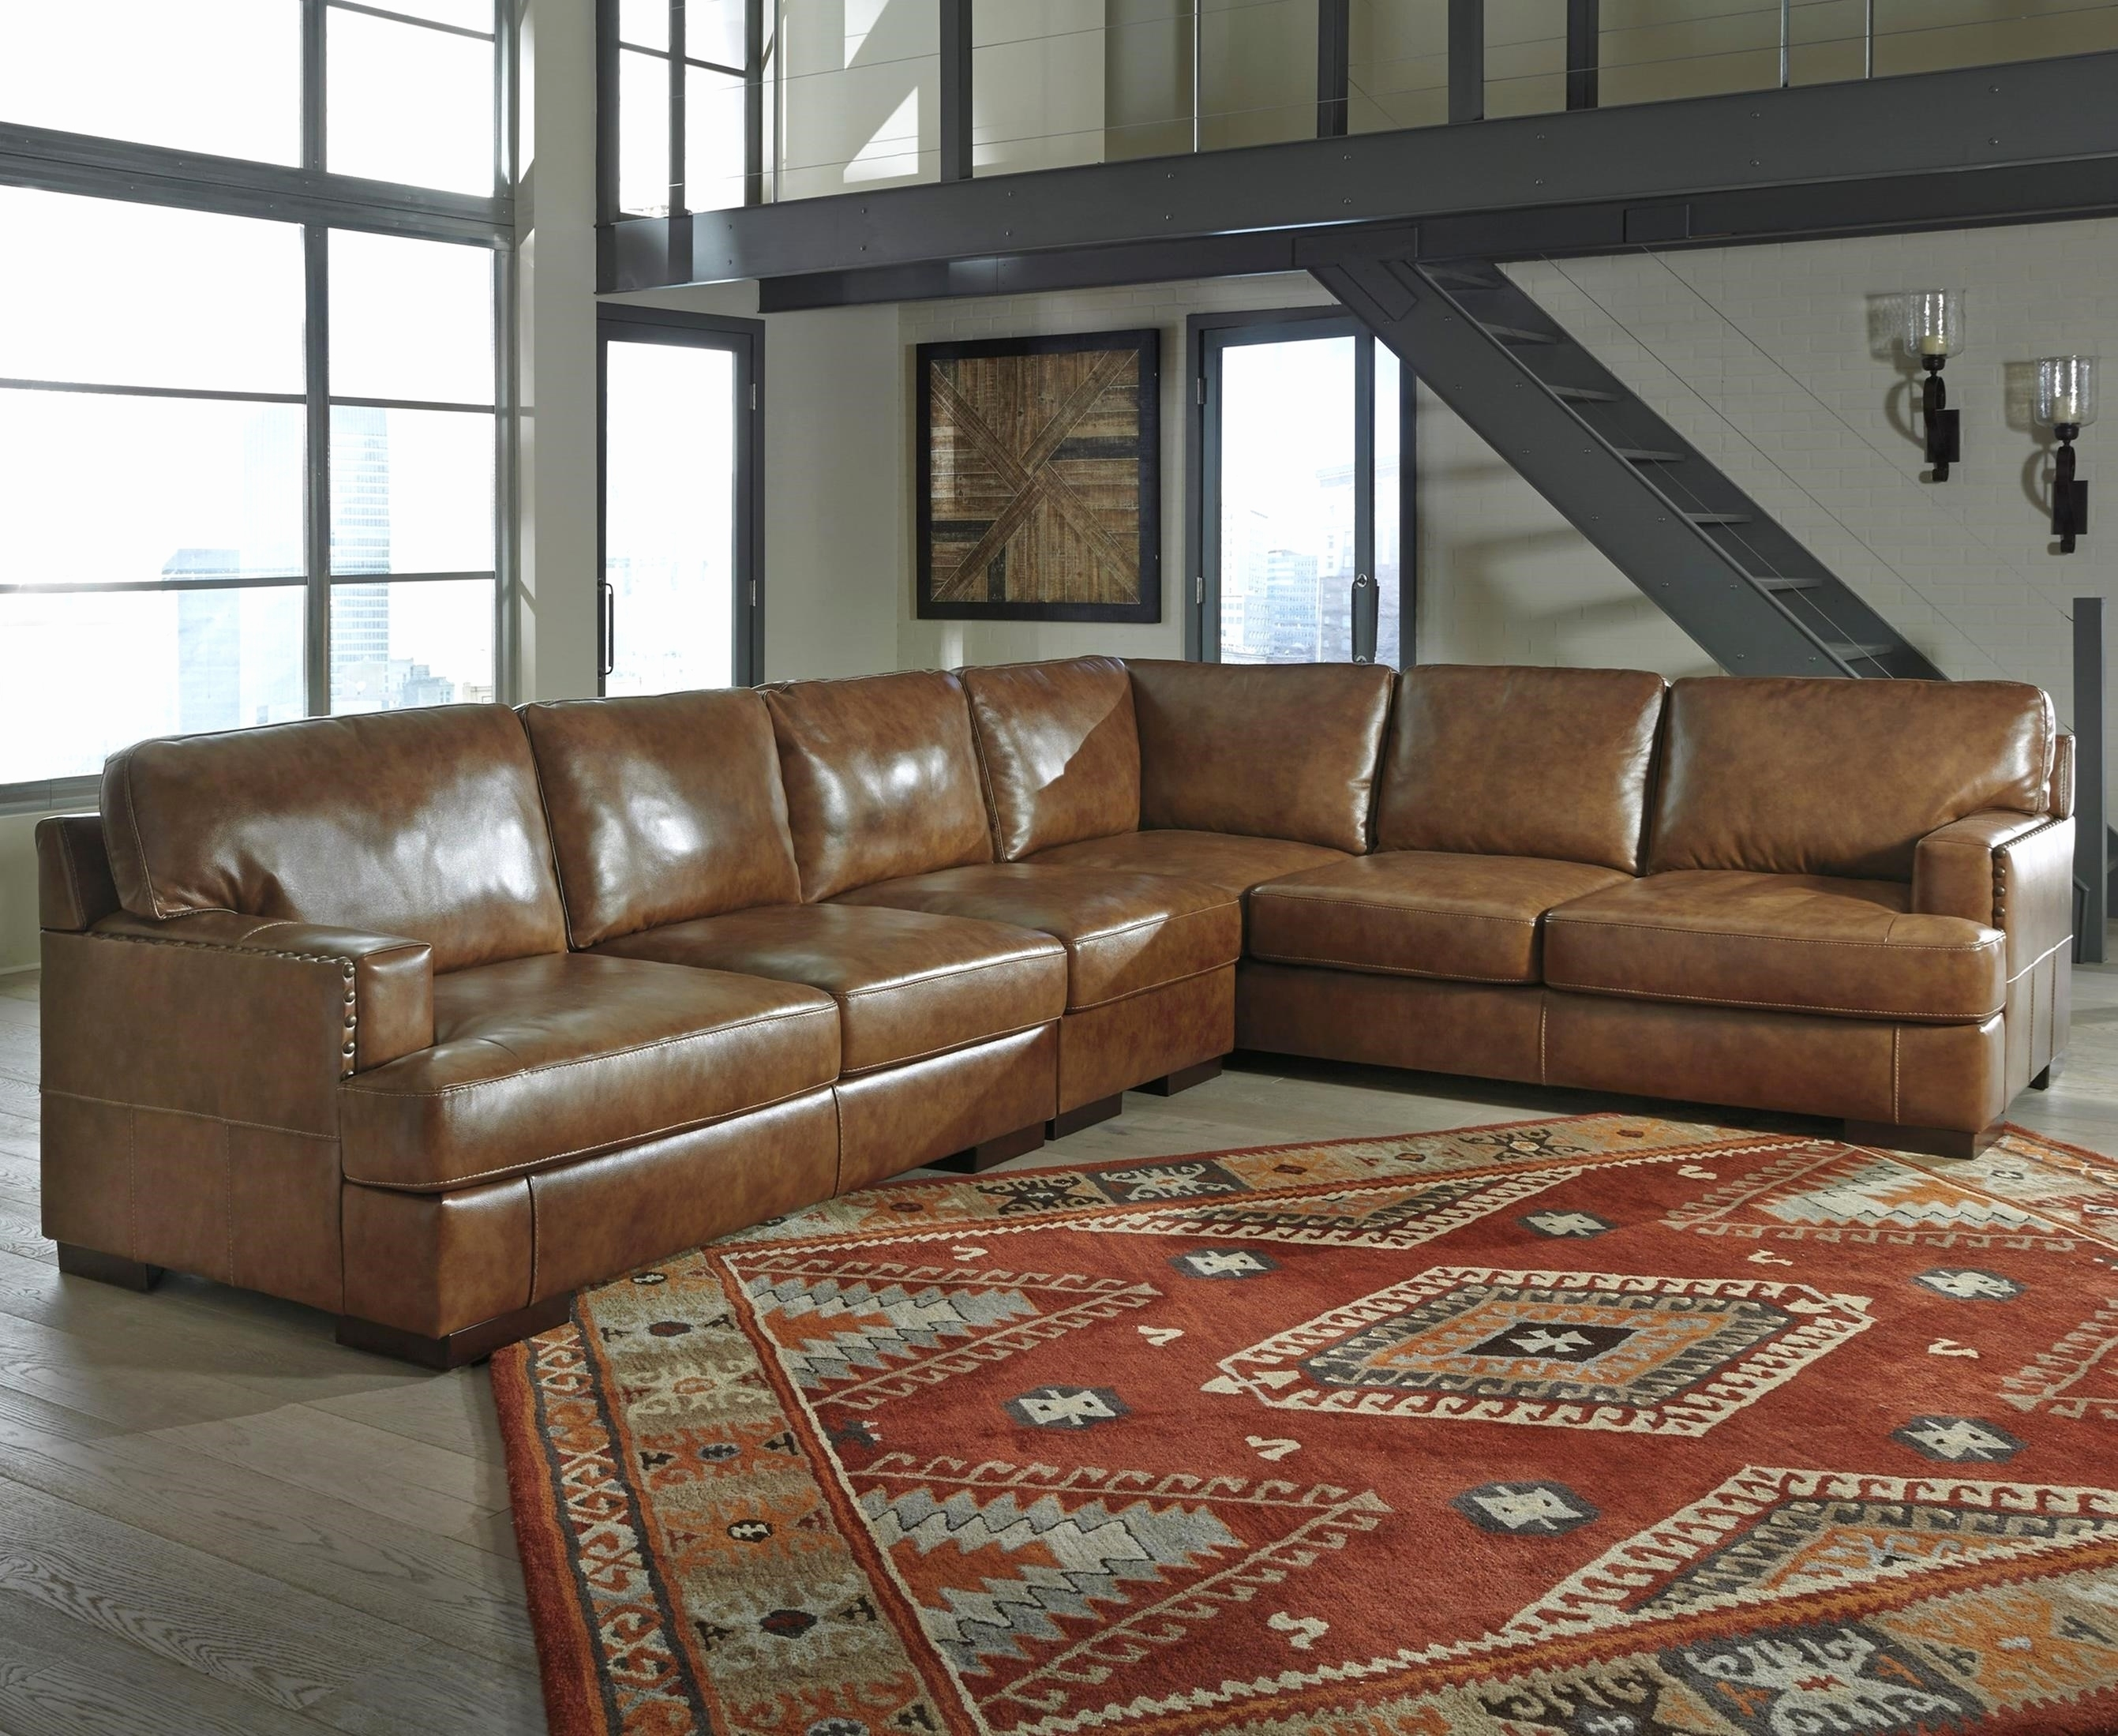 Lovely 3 Piece Corner Sectional Sofa 2018 – Couches And Sofas Ideas Inside Grand Furniture Sectional Sofas (View 8 of 10)